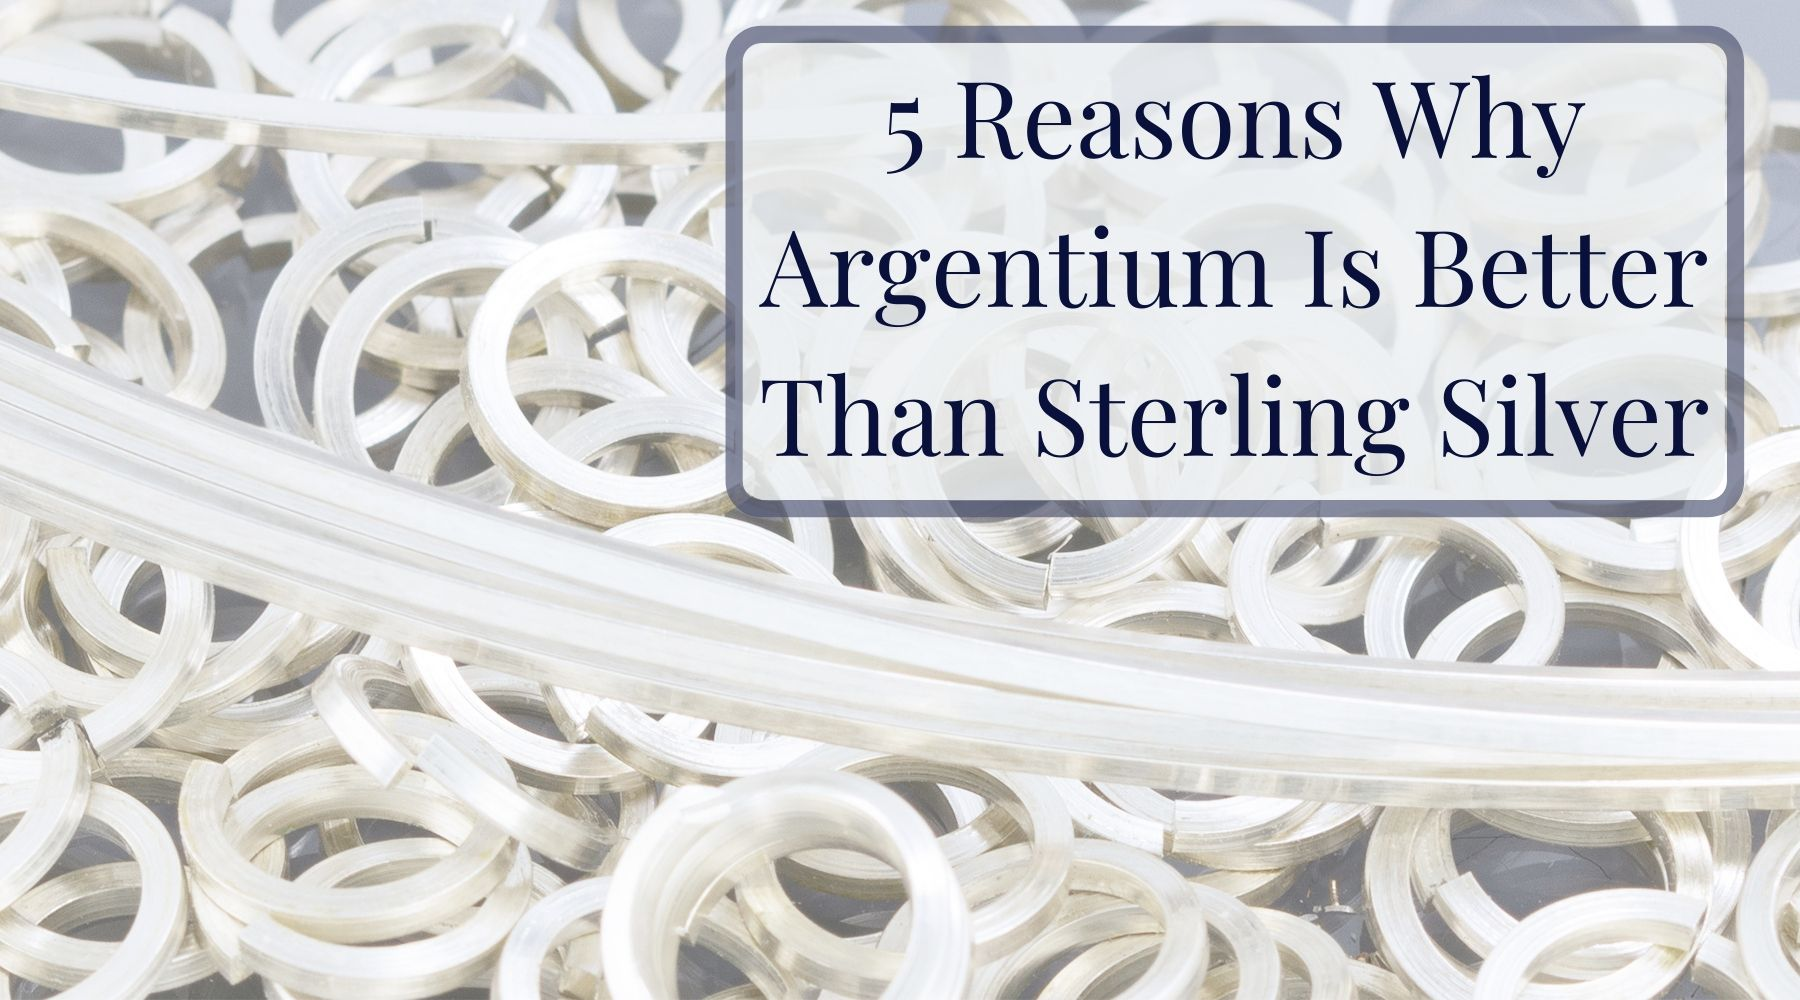 5 Reasons Why Argentium Is Better Than Sterling Silver